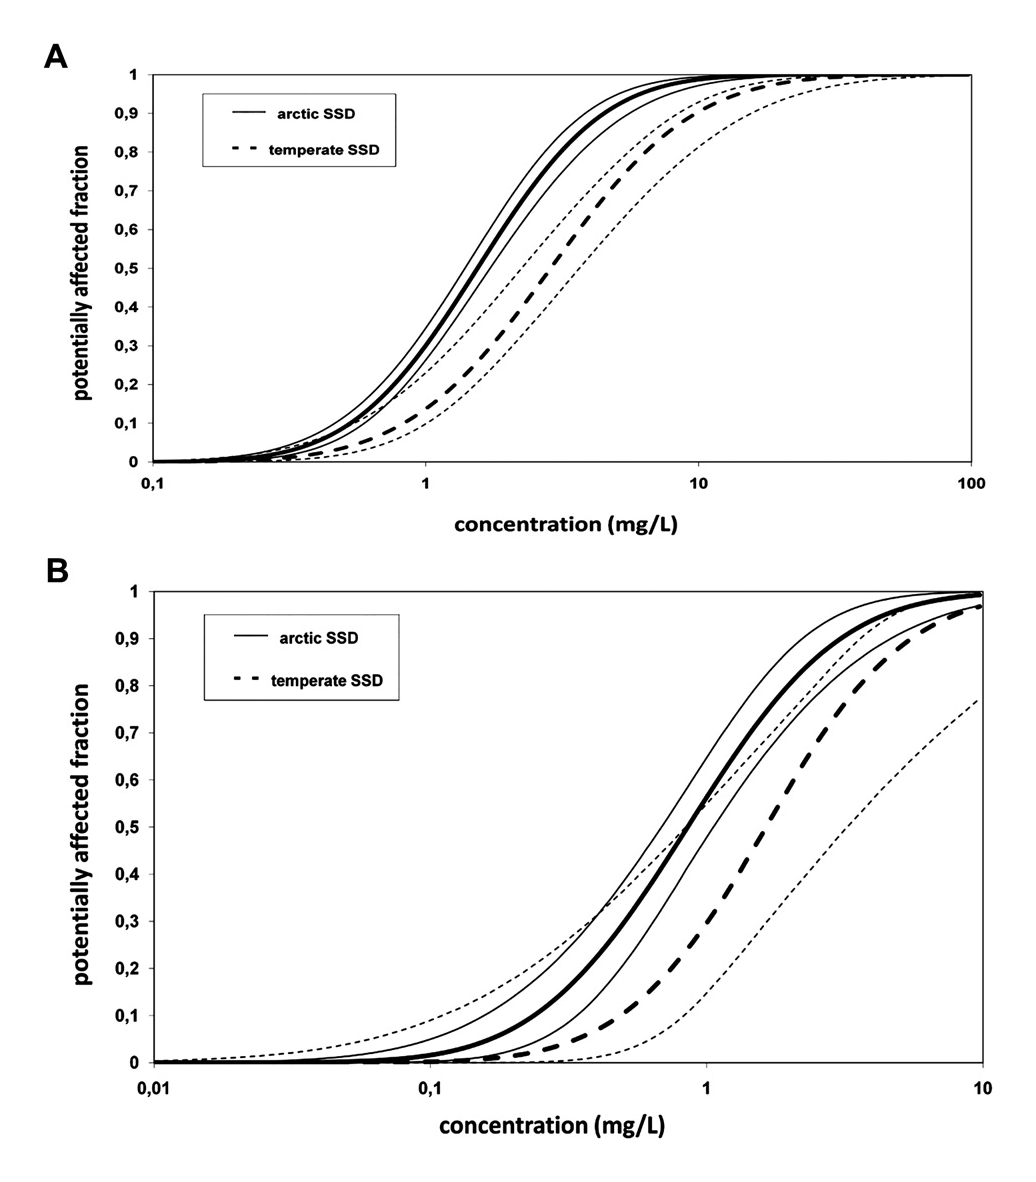 Figure 6-2. Species-sensitivity distribution curves comparing the relative sensitivity for Arctic (solid line) and temperate (dashed line) species to for 2-methylnaphthalene based on (A) LC50s, and (B) No effect concentrations.